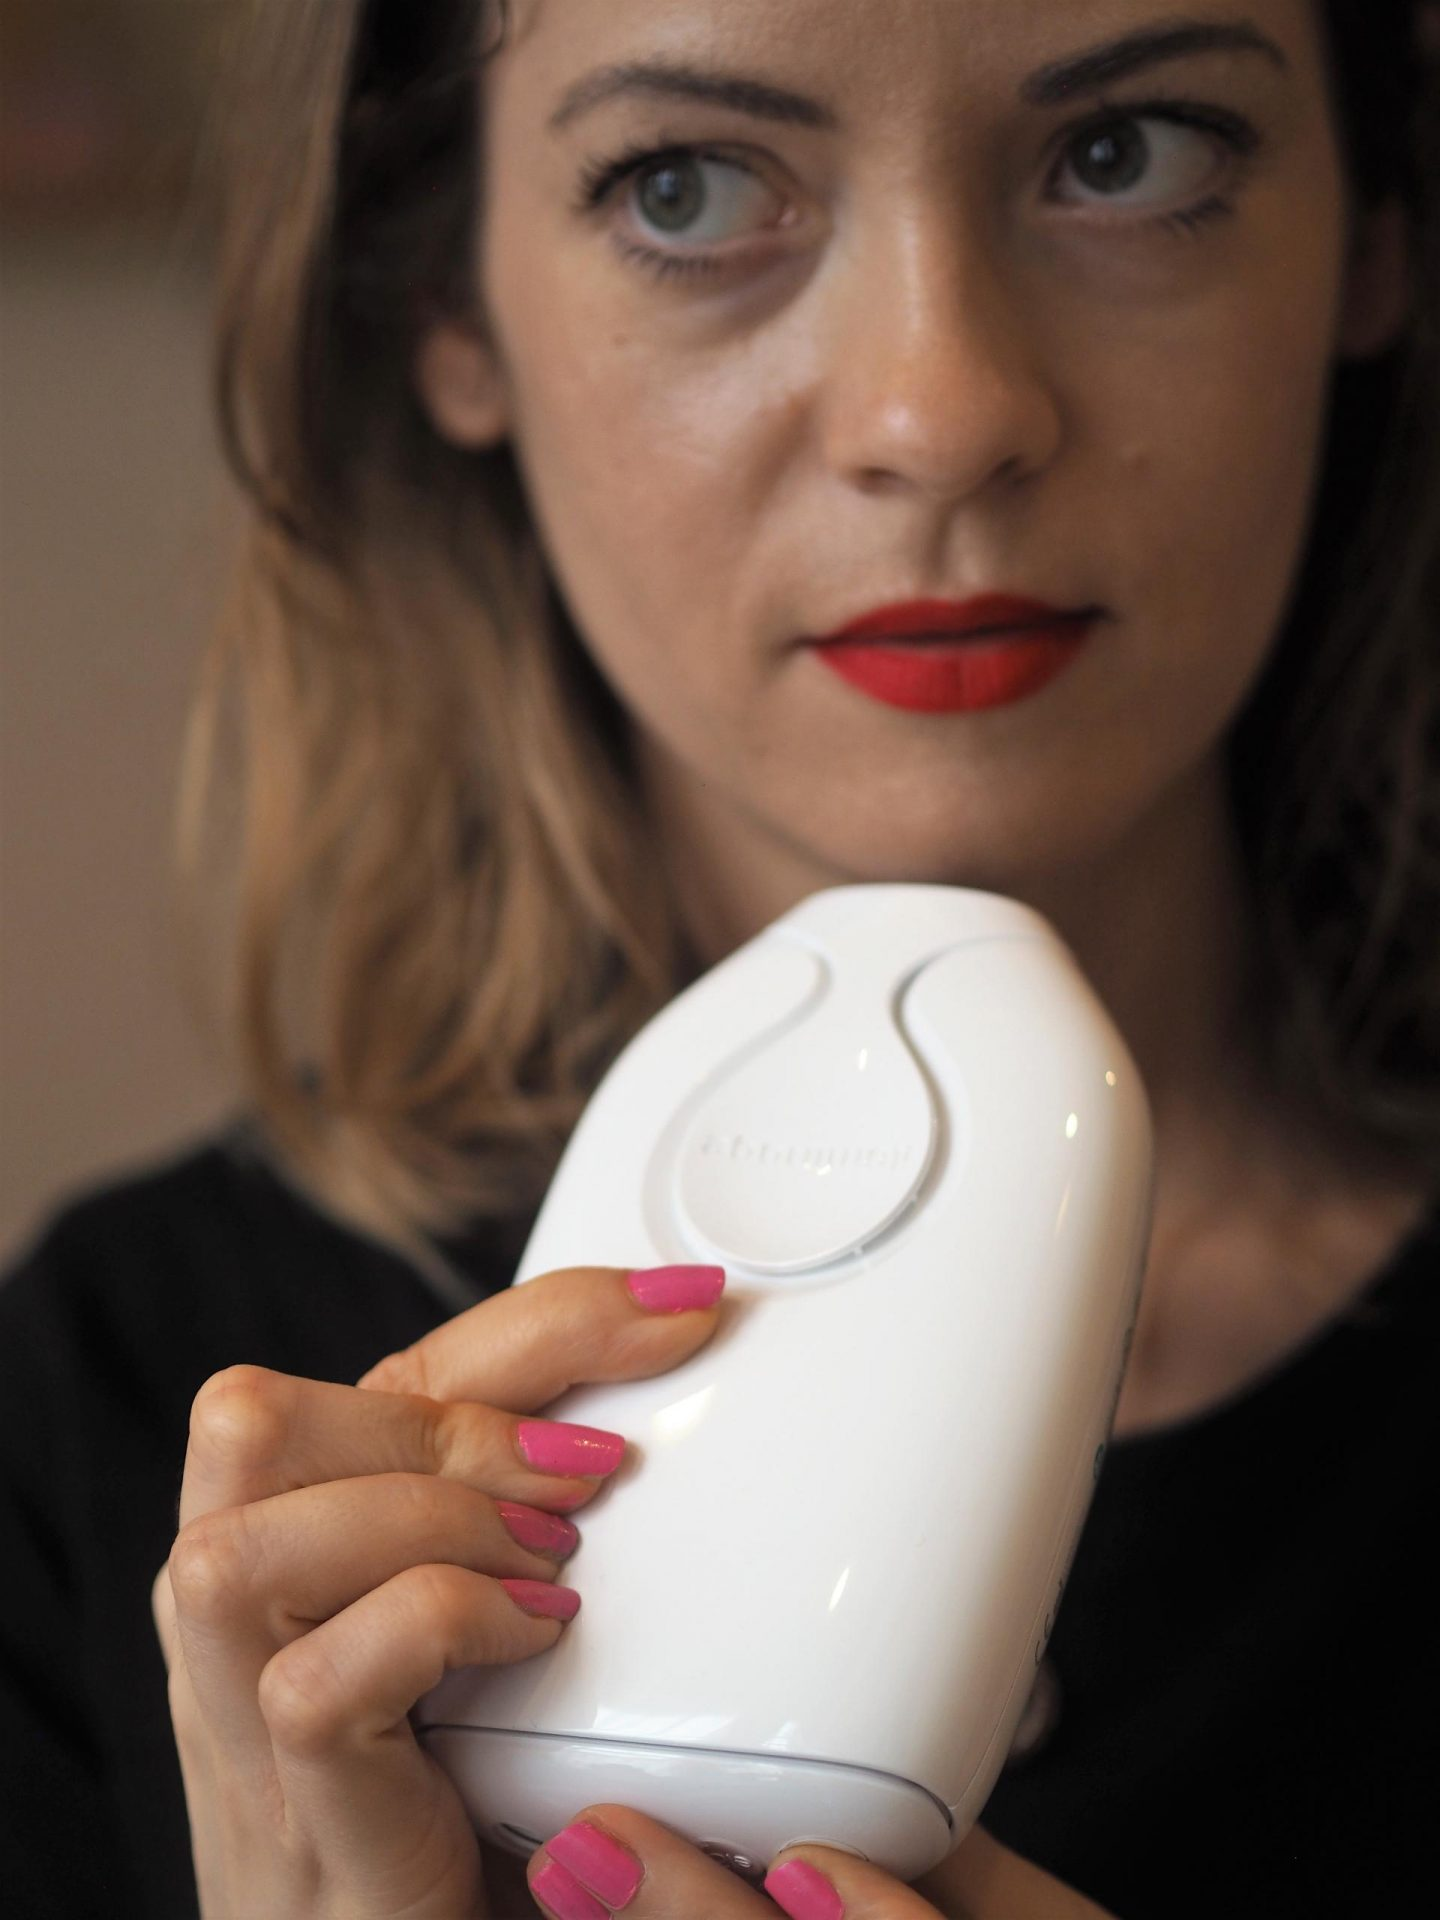 At Home Hair Removal With Illuminage Precise Touch